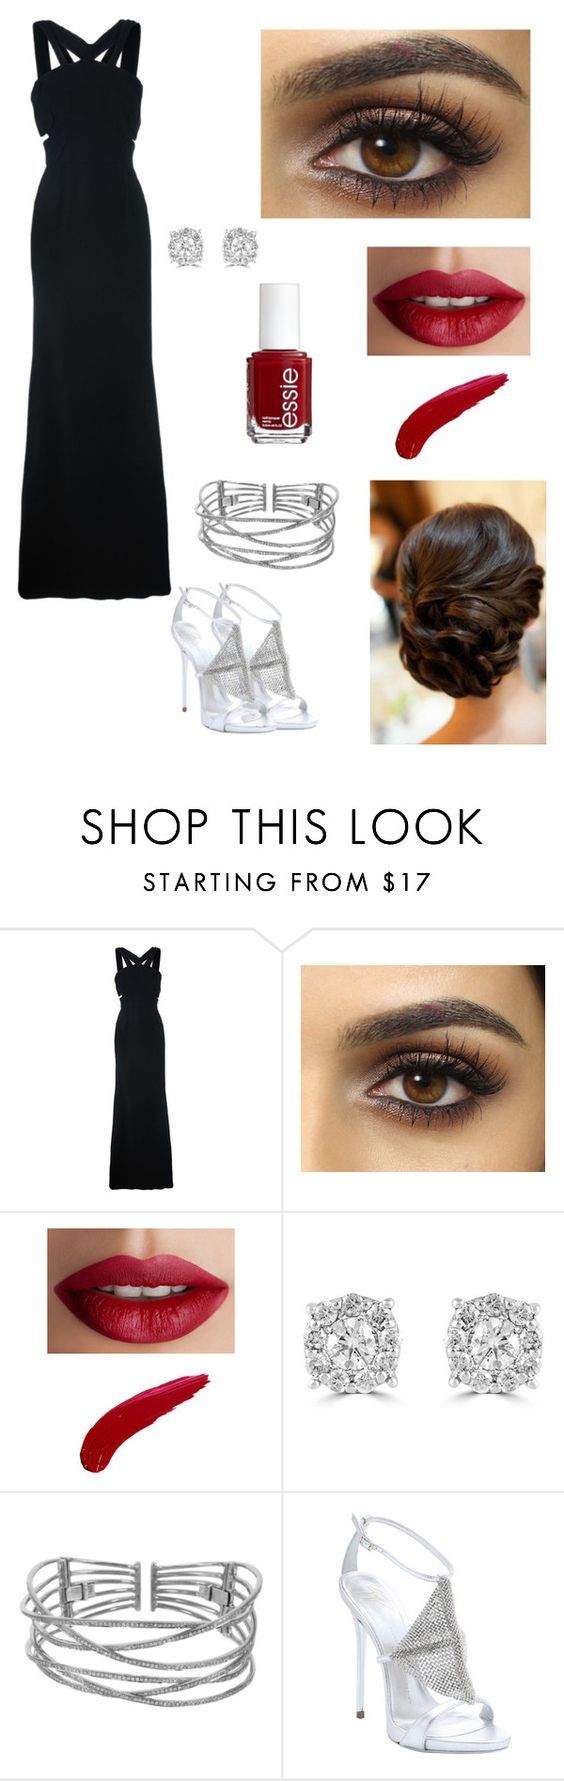 """Little Soldier- #1"" by reyna27937 ❤ liked on Polyvore featuring Roland Mouret, TheBalm, Essie, Effy Jewelry, Plukka and Giuseppe Zanotti"